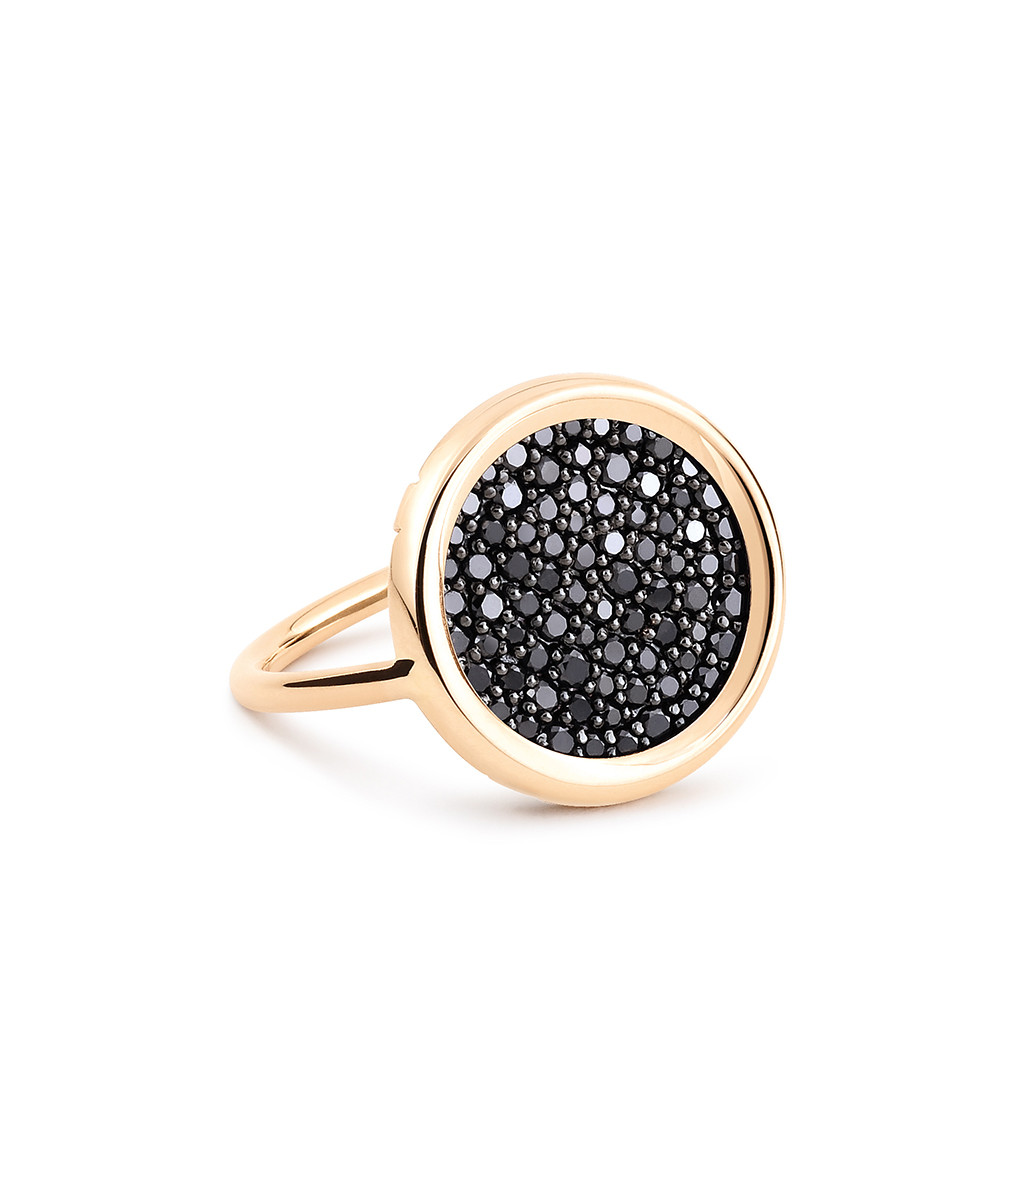 GINETTE_NY - Bague Disc Diamants Noirs